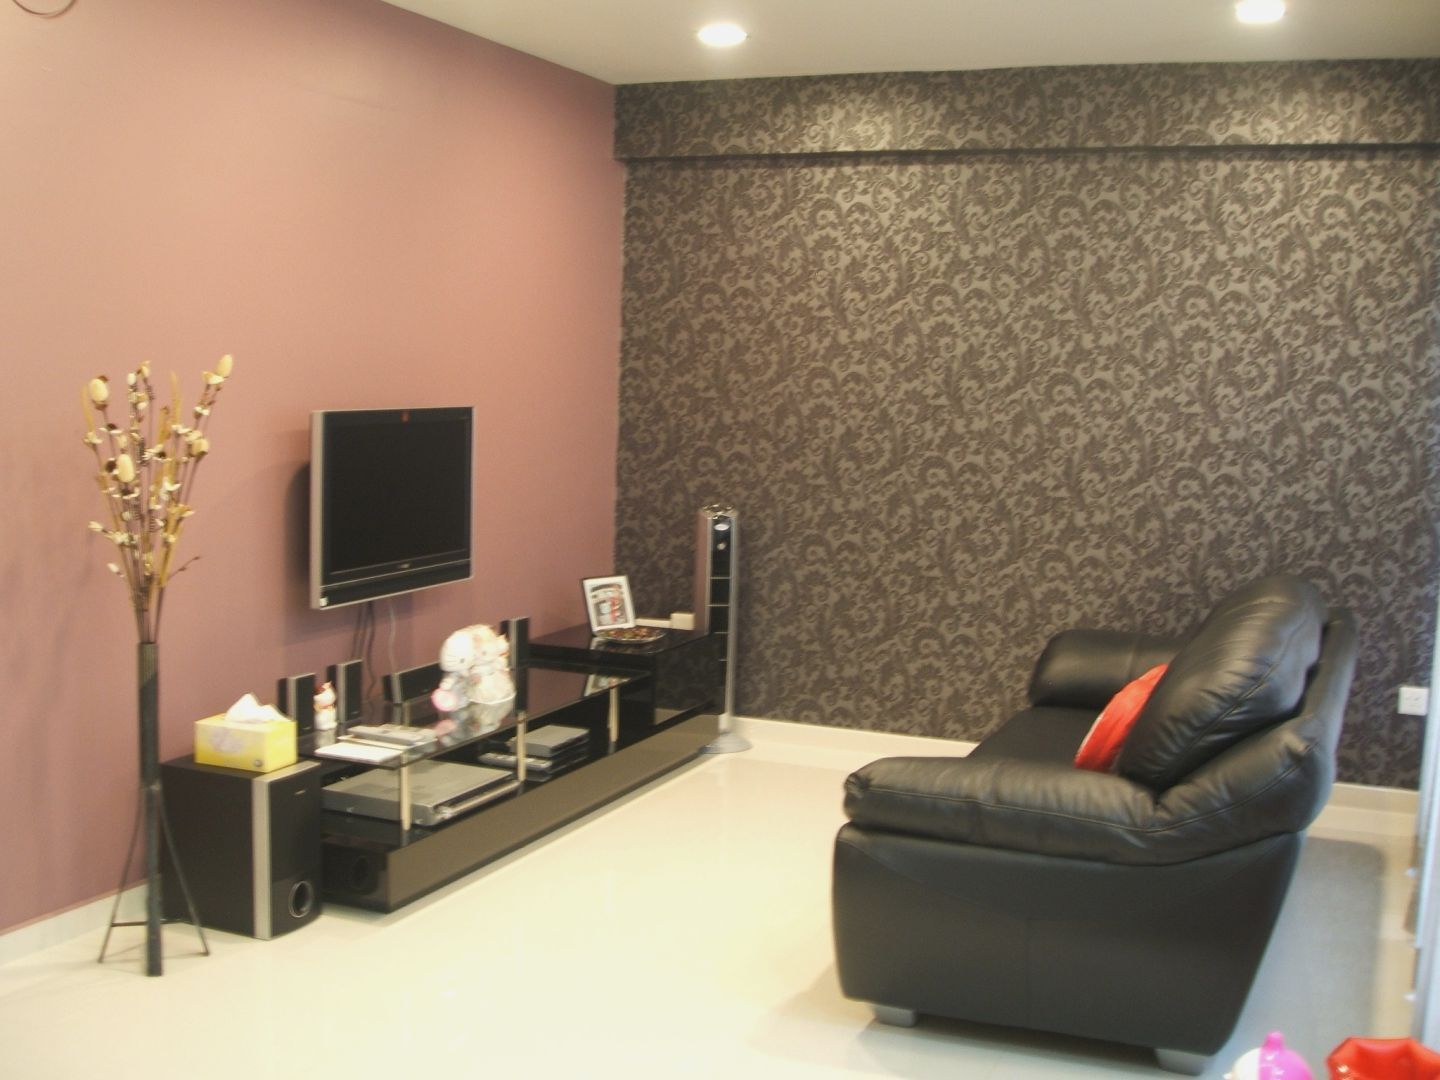 House Room Colour